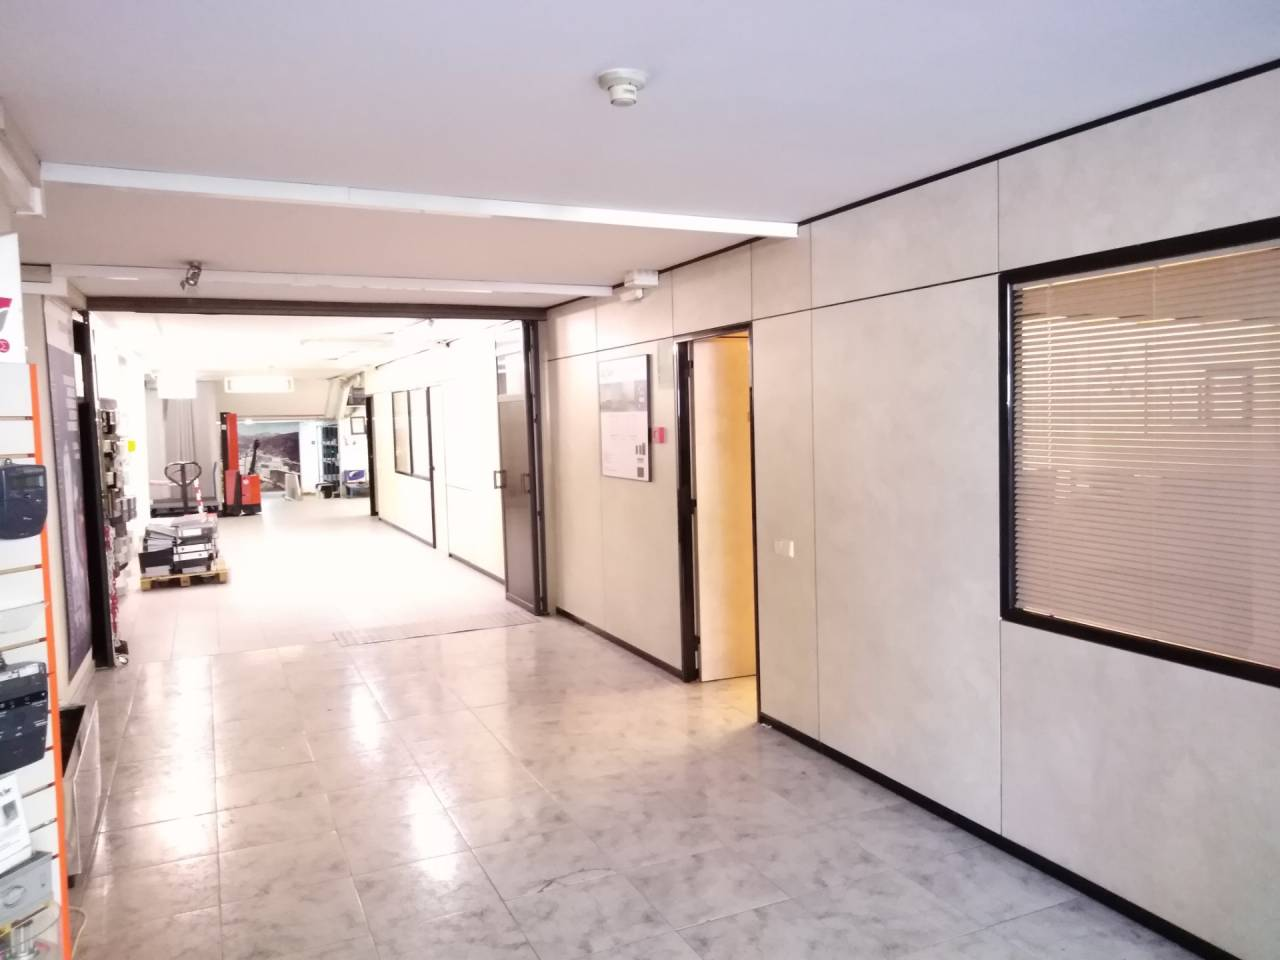 Local comercial en venda El Fort Pienc (Barcelona Capital)